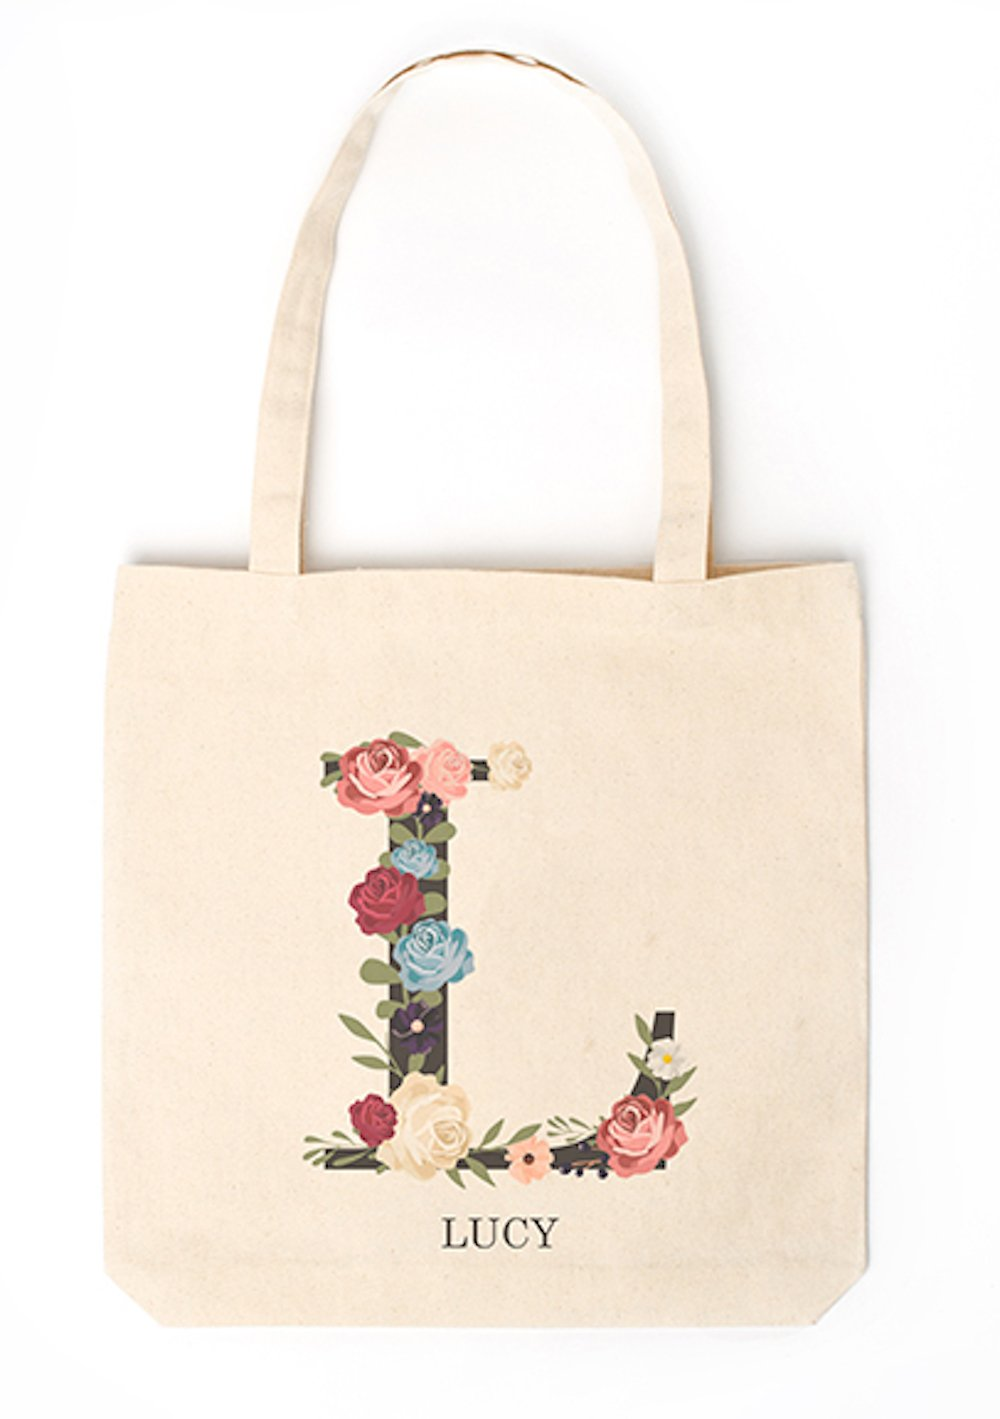 Personalized Monogram Tote - Unique Monogrammed Tote Bags Gifts for Women, Also a Gift for Mom (Letter L)